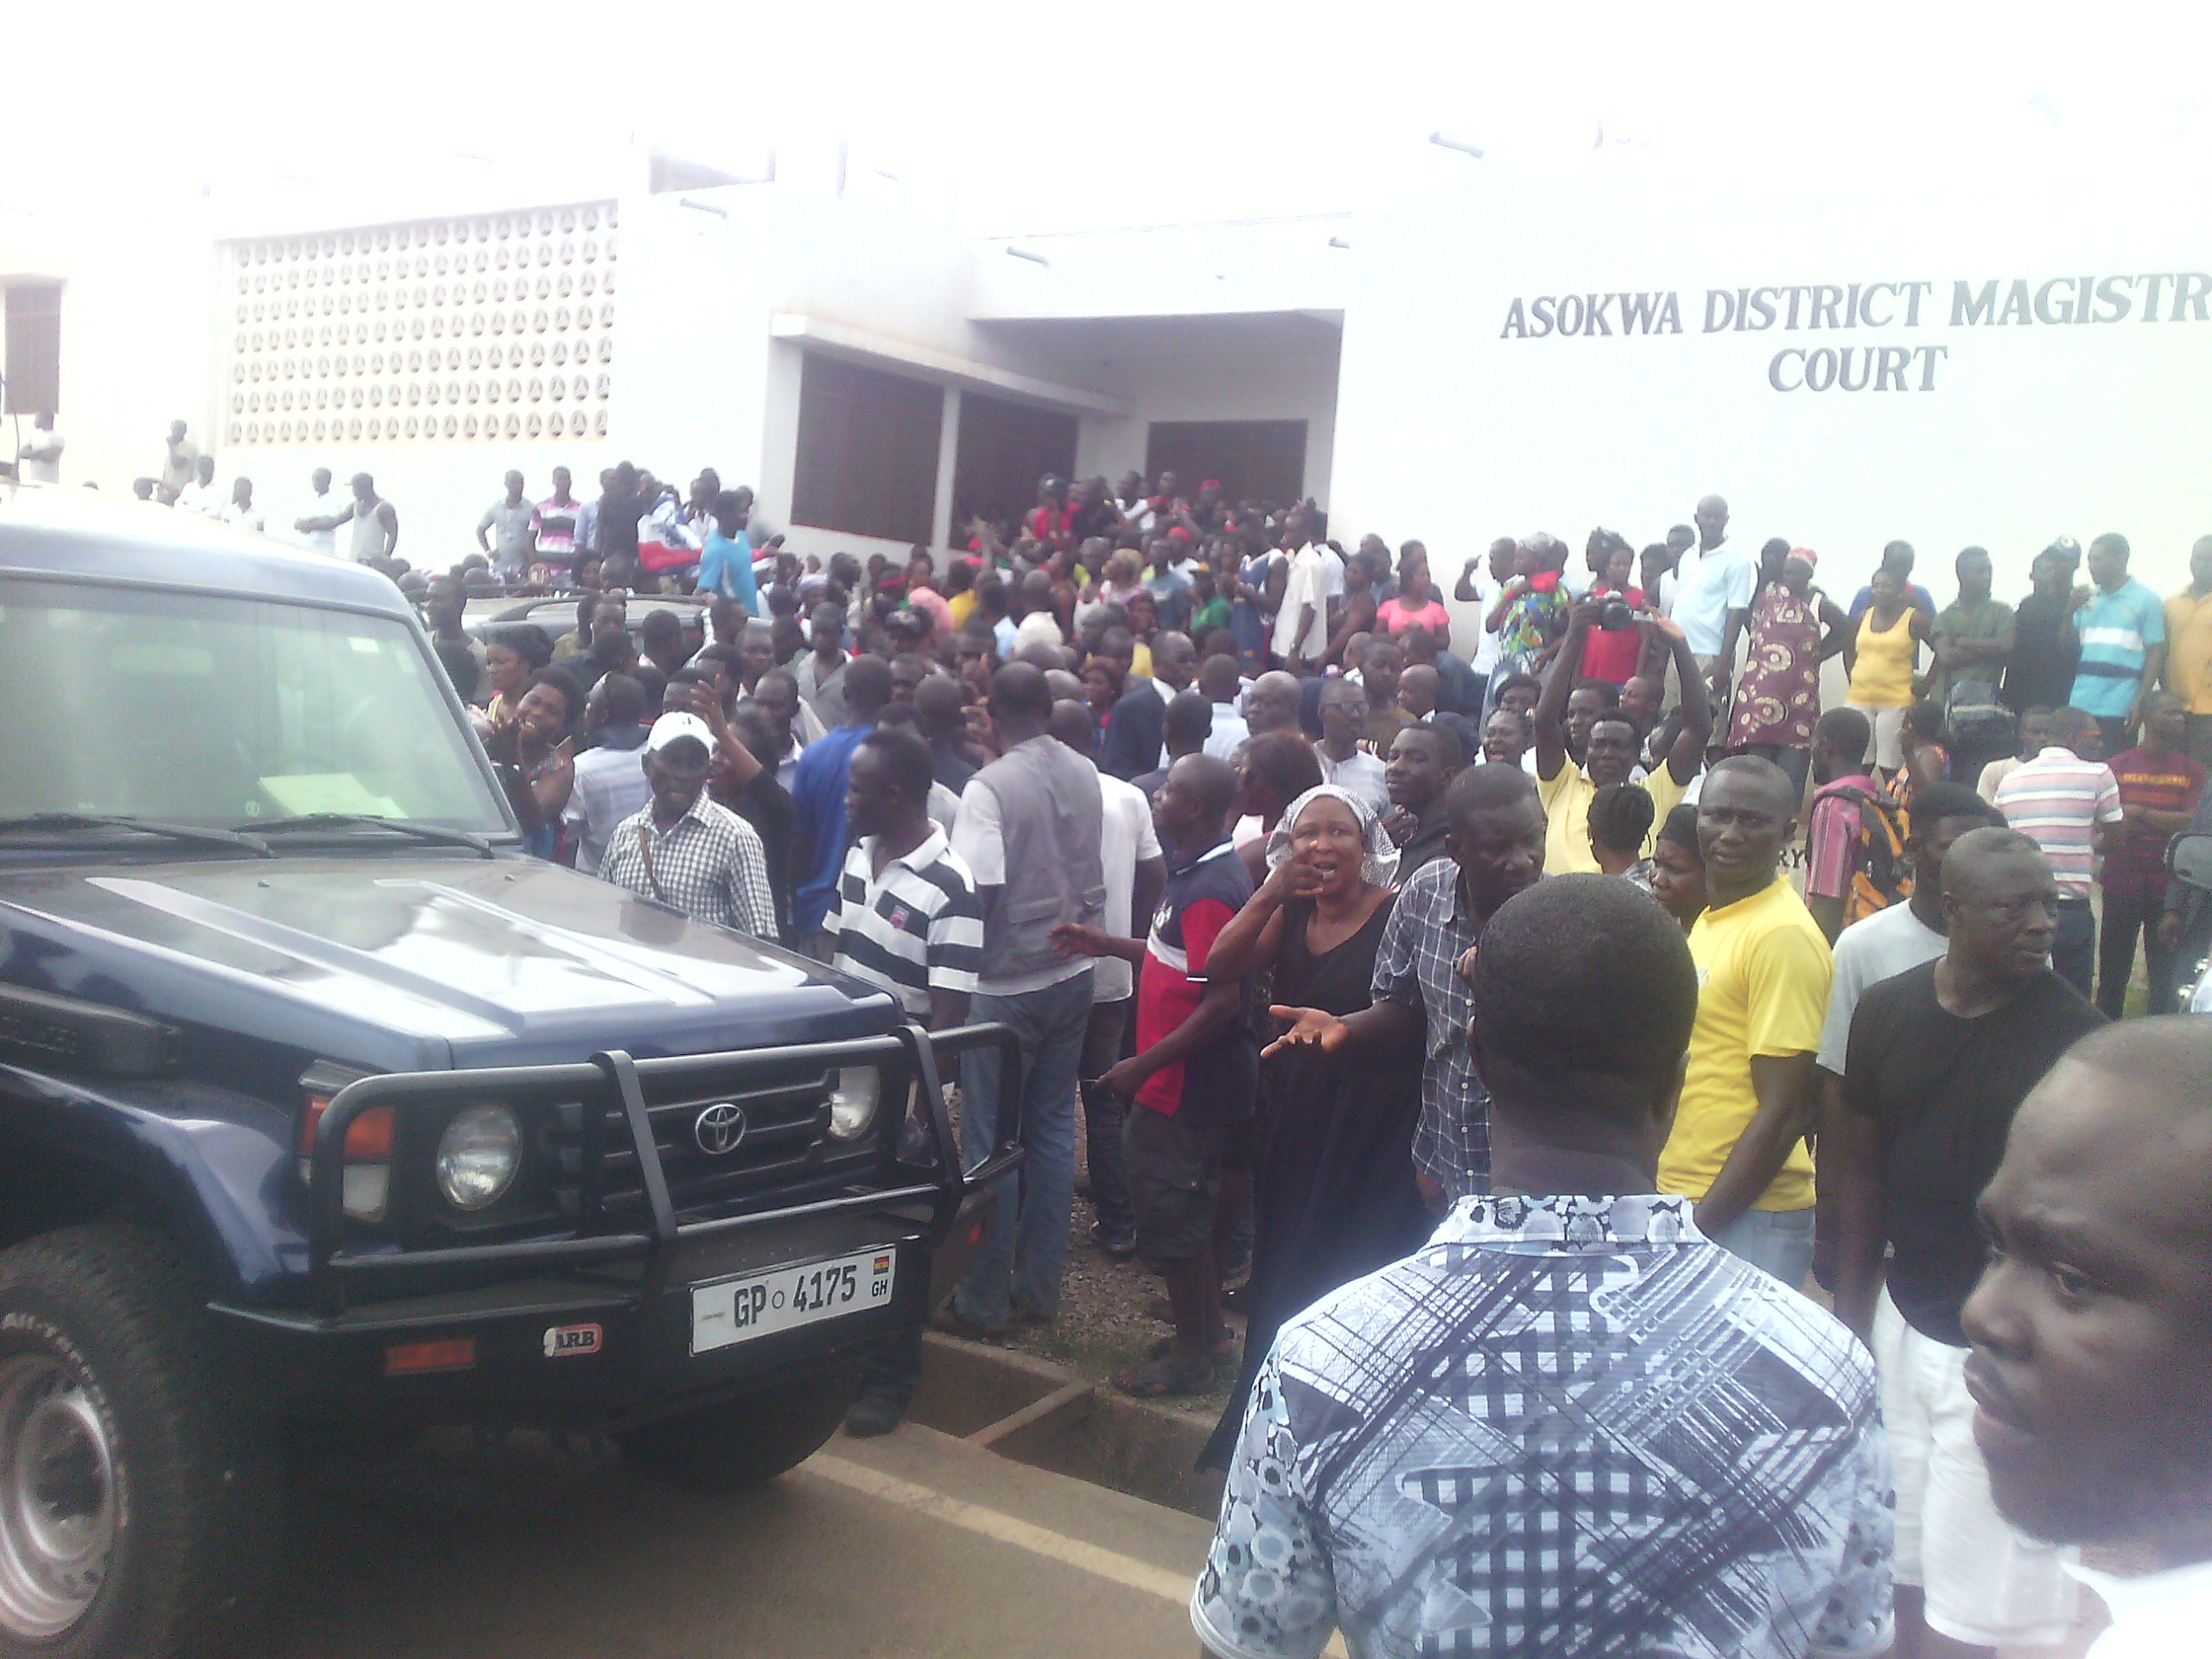 New Patriotic Party Supporters In Ashanti Region at Kumasi Magistrate Court.